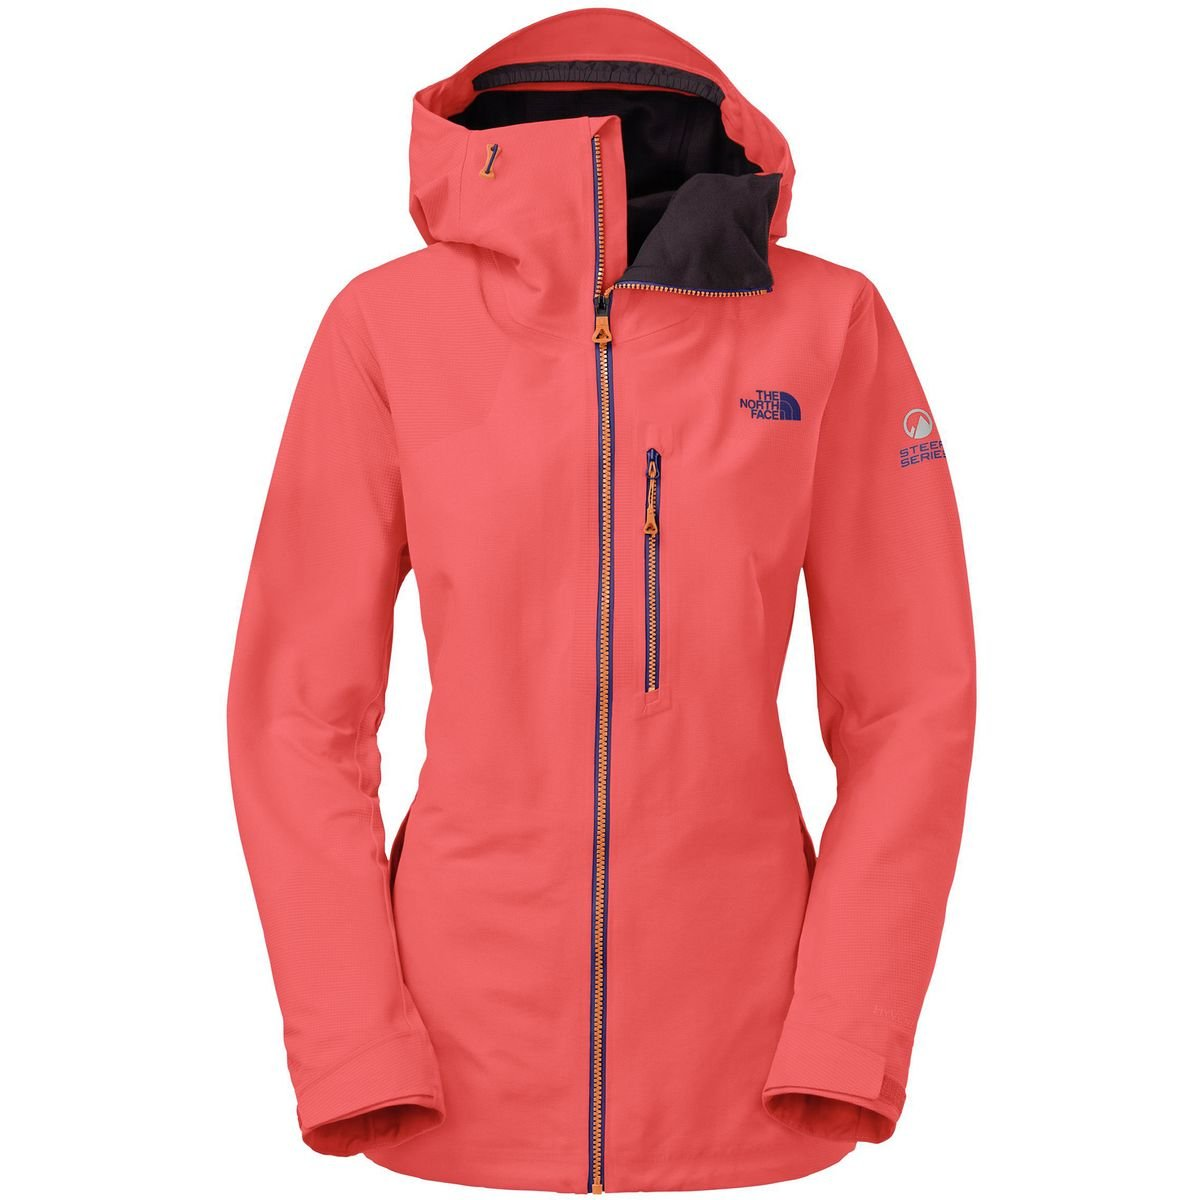 b173c737d THE NORTH FACE W Fuse Form Brigandine 3L Jacket - Women's Jacket ...